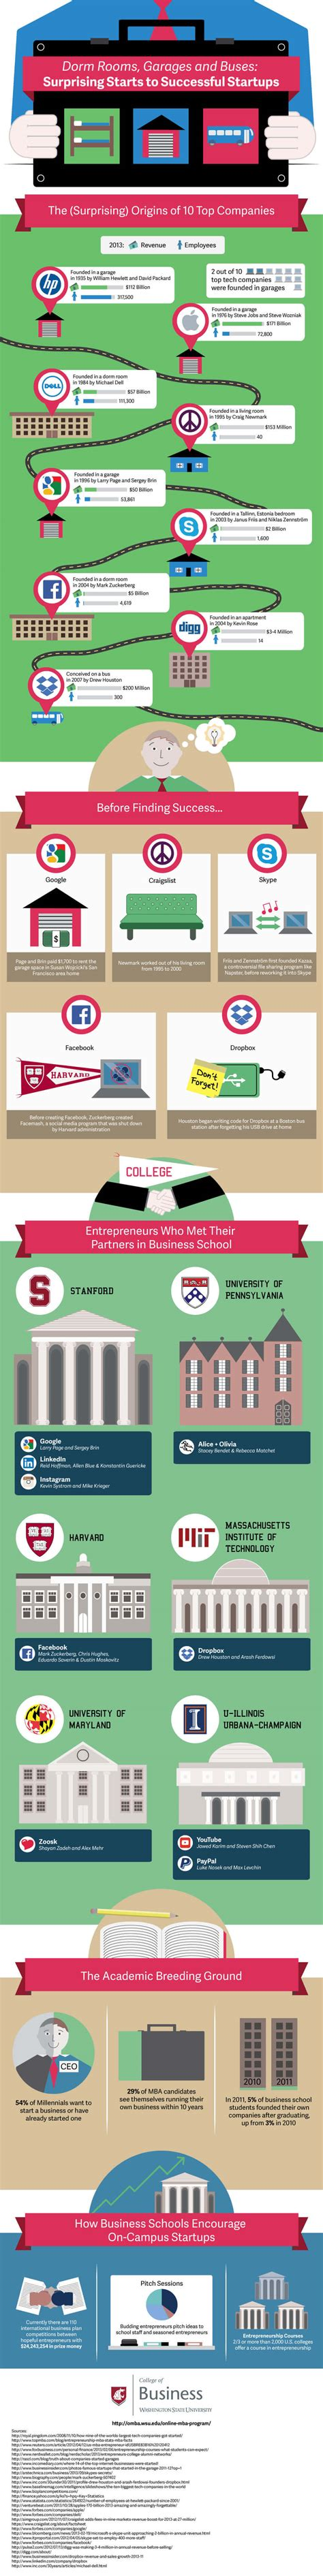 Wsu Mba Program Length by 4 Inspirational Infographics To Start A Business In 2017